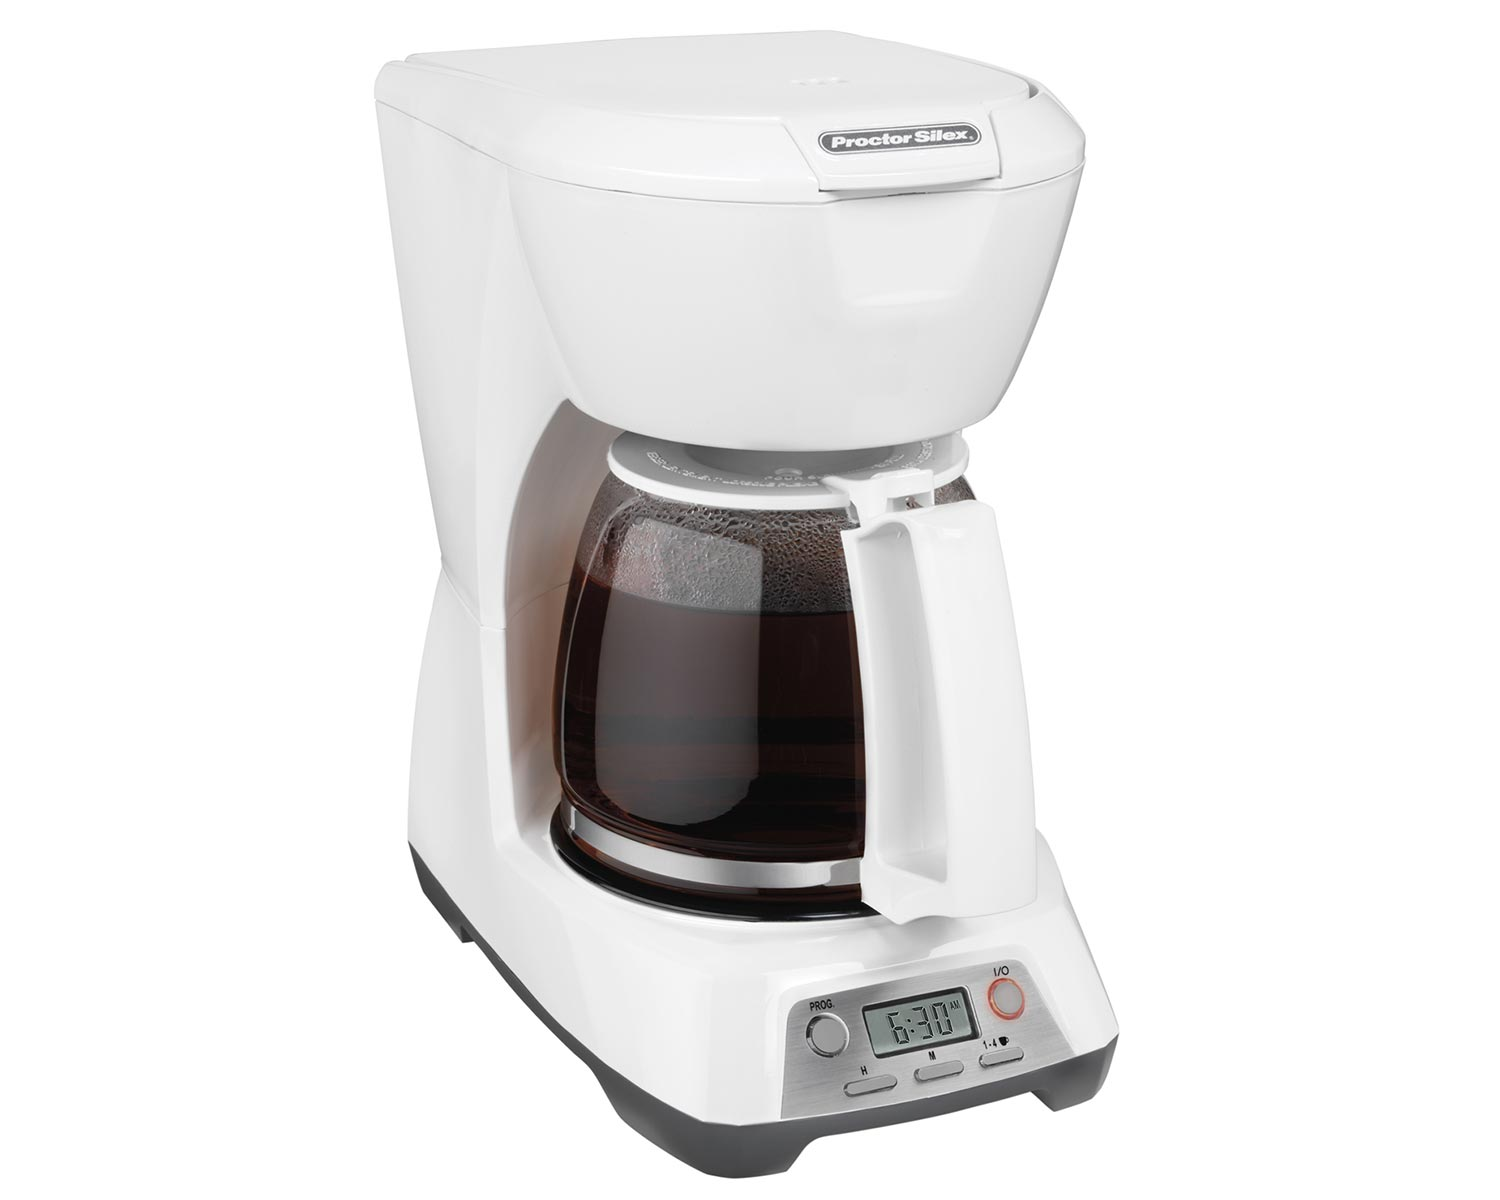 Programmable 12 Cup Coffee Maker (white)